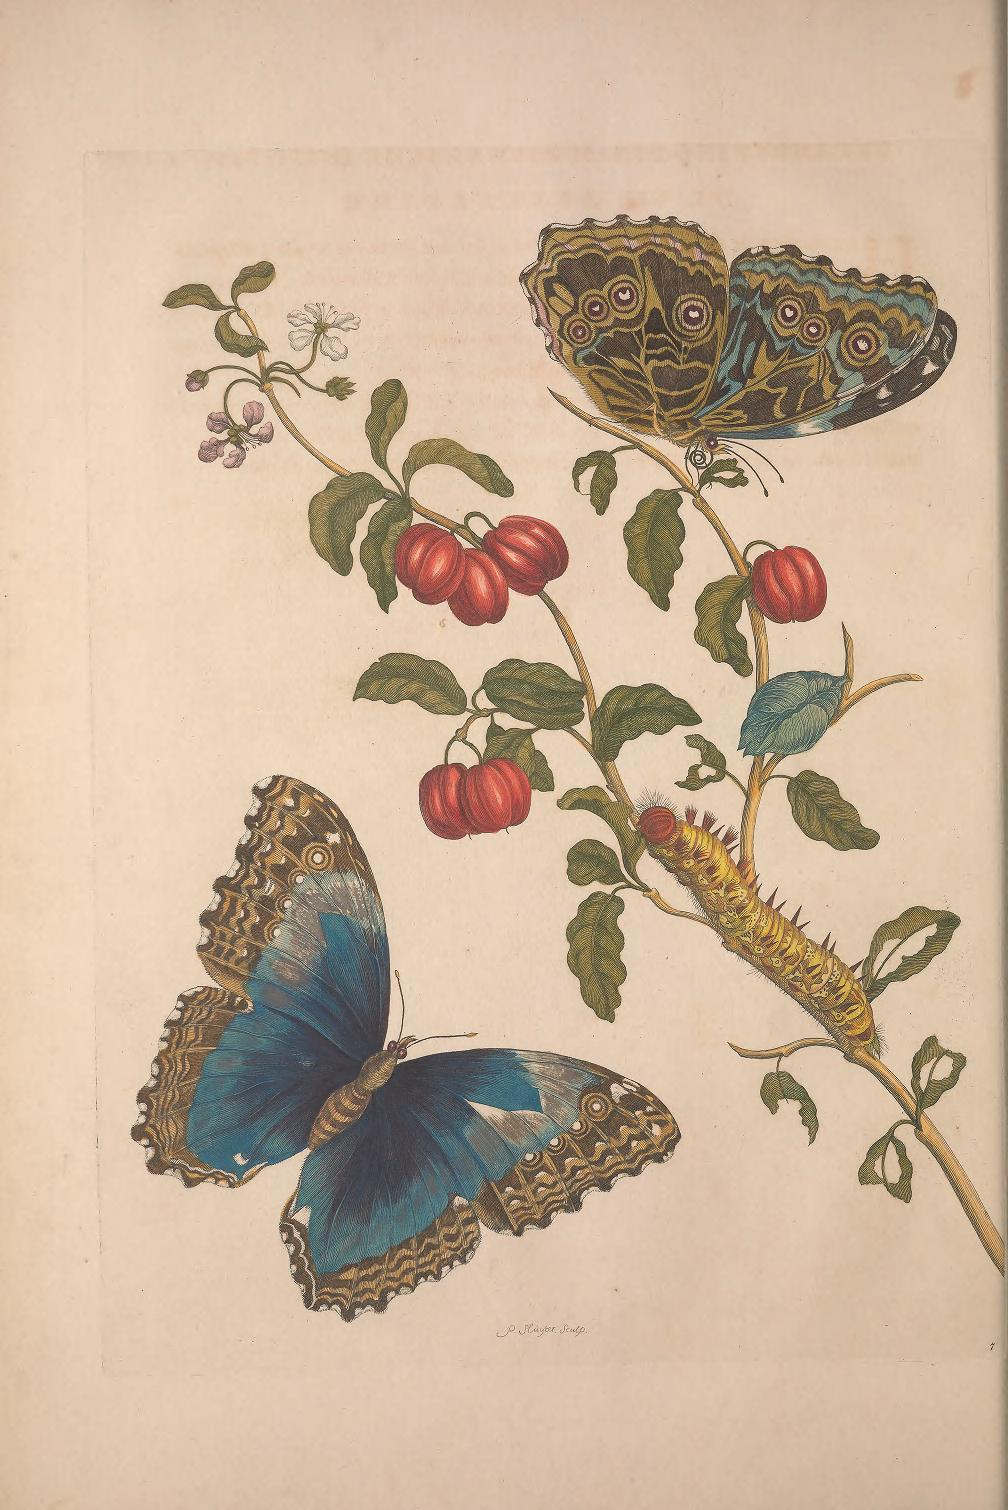 - Merian, Maria Sibylla. Metamorphosis insectorum surinamensium. Amsterdam: 1705. Available on Internet Archive here. An early book about butterflies…and their caterpillars. Merian was a leading entomologist in the early 1700s…and was one of the first to publish color images of insects…particularly documenting metamorphosis of butterflies.